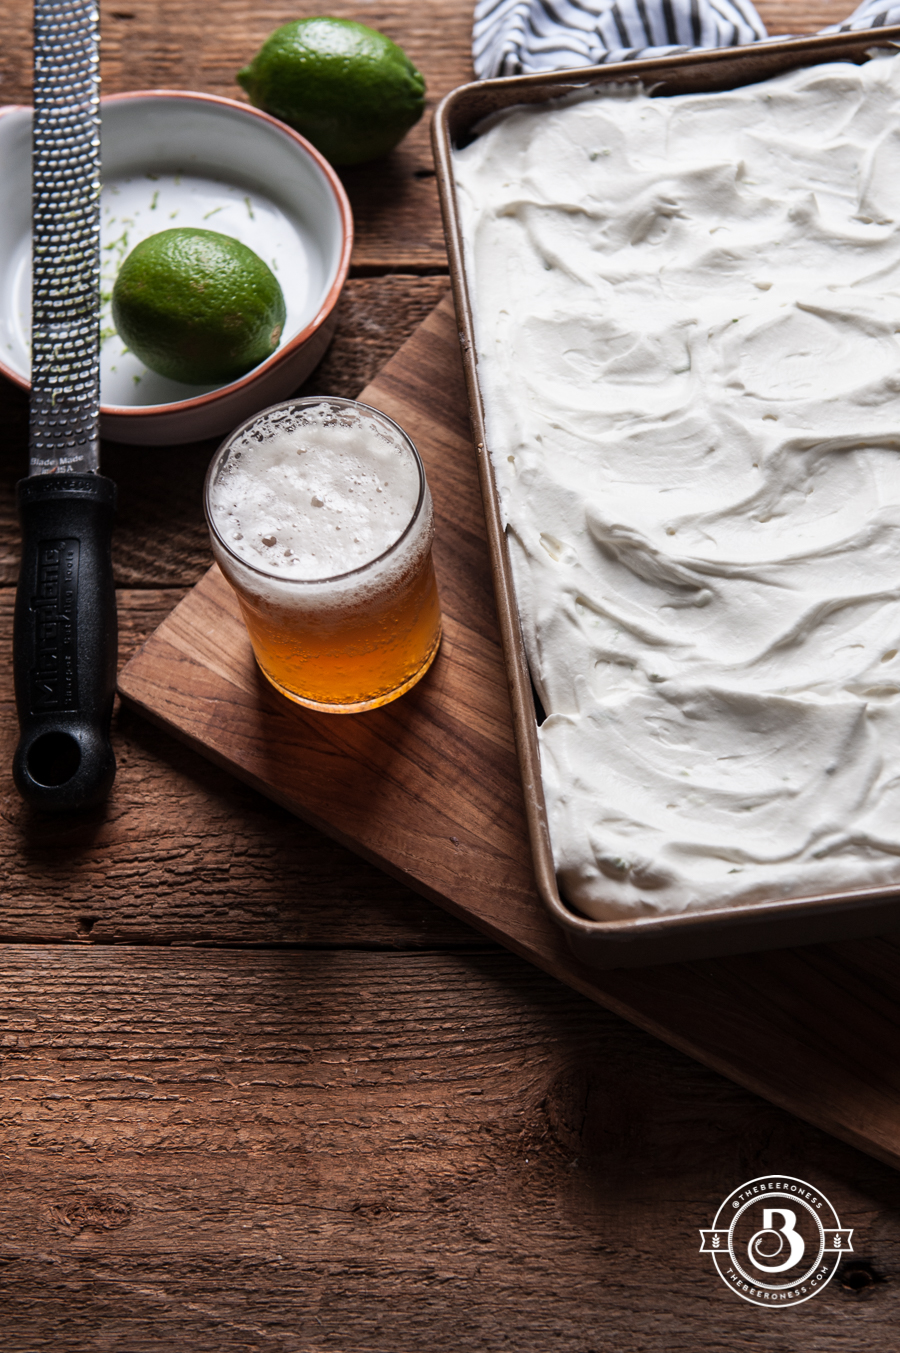 Lemon Beer Party Cake with Rum Lime Whipped Cream1